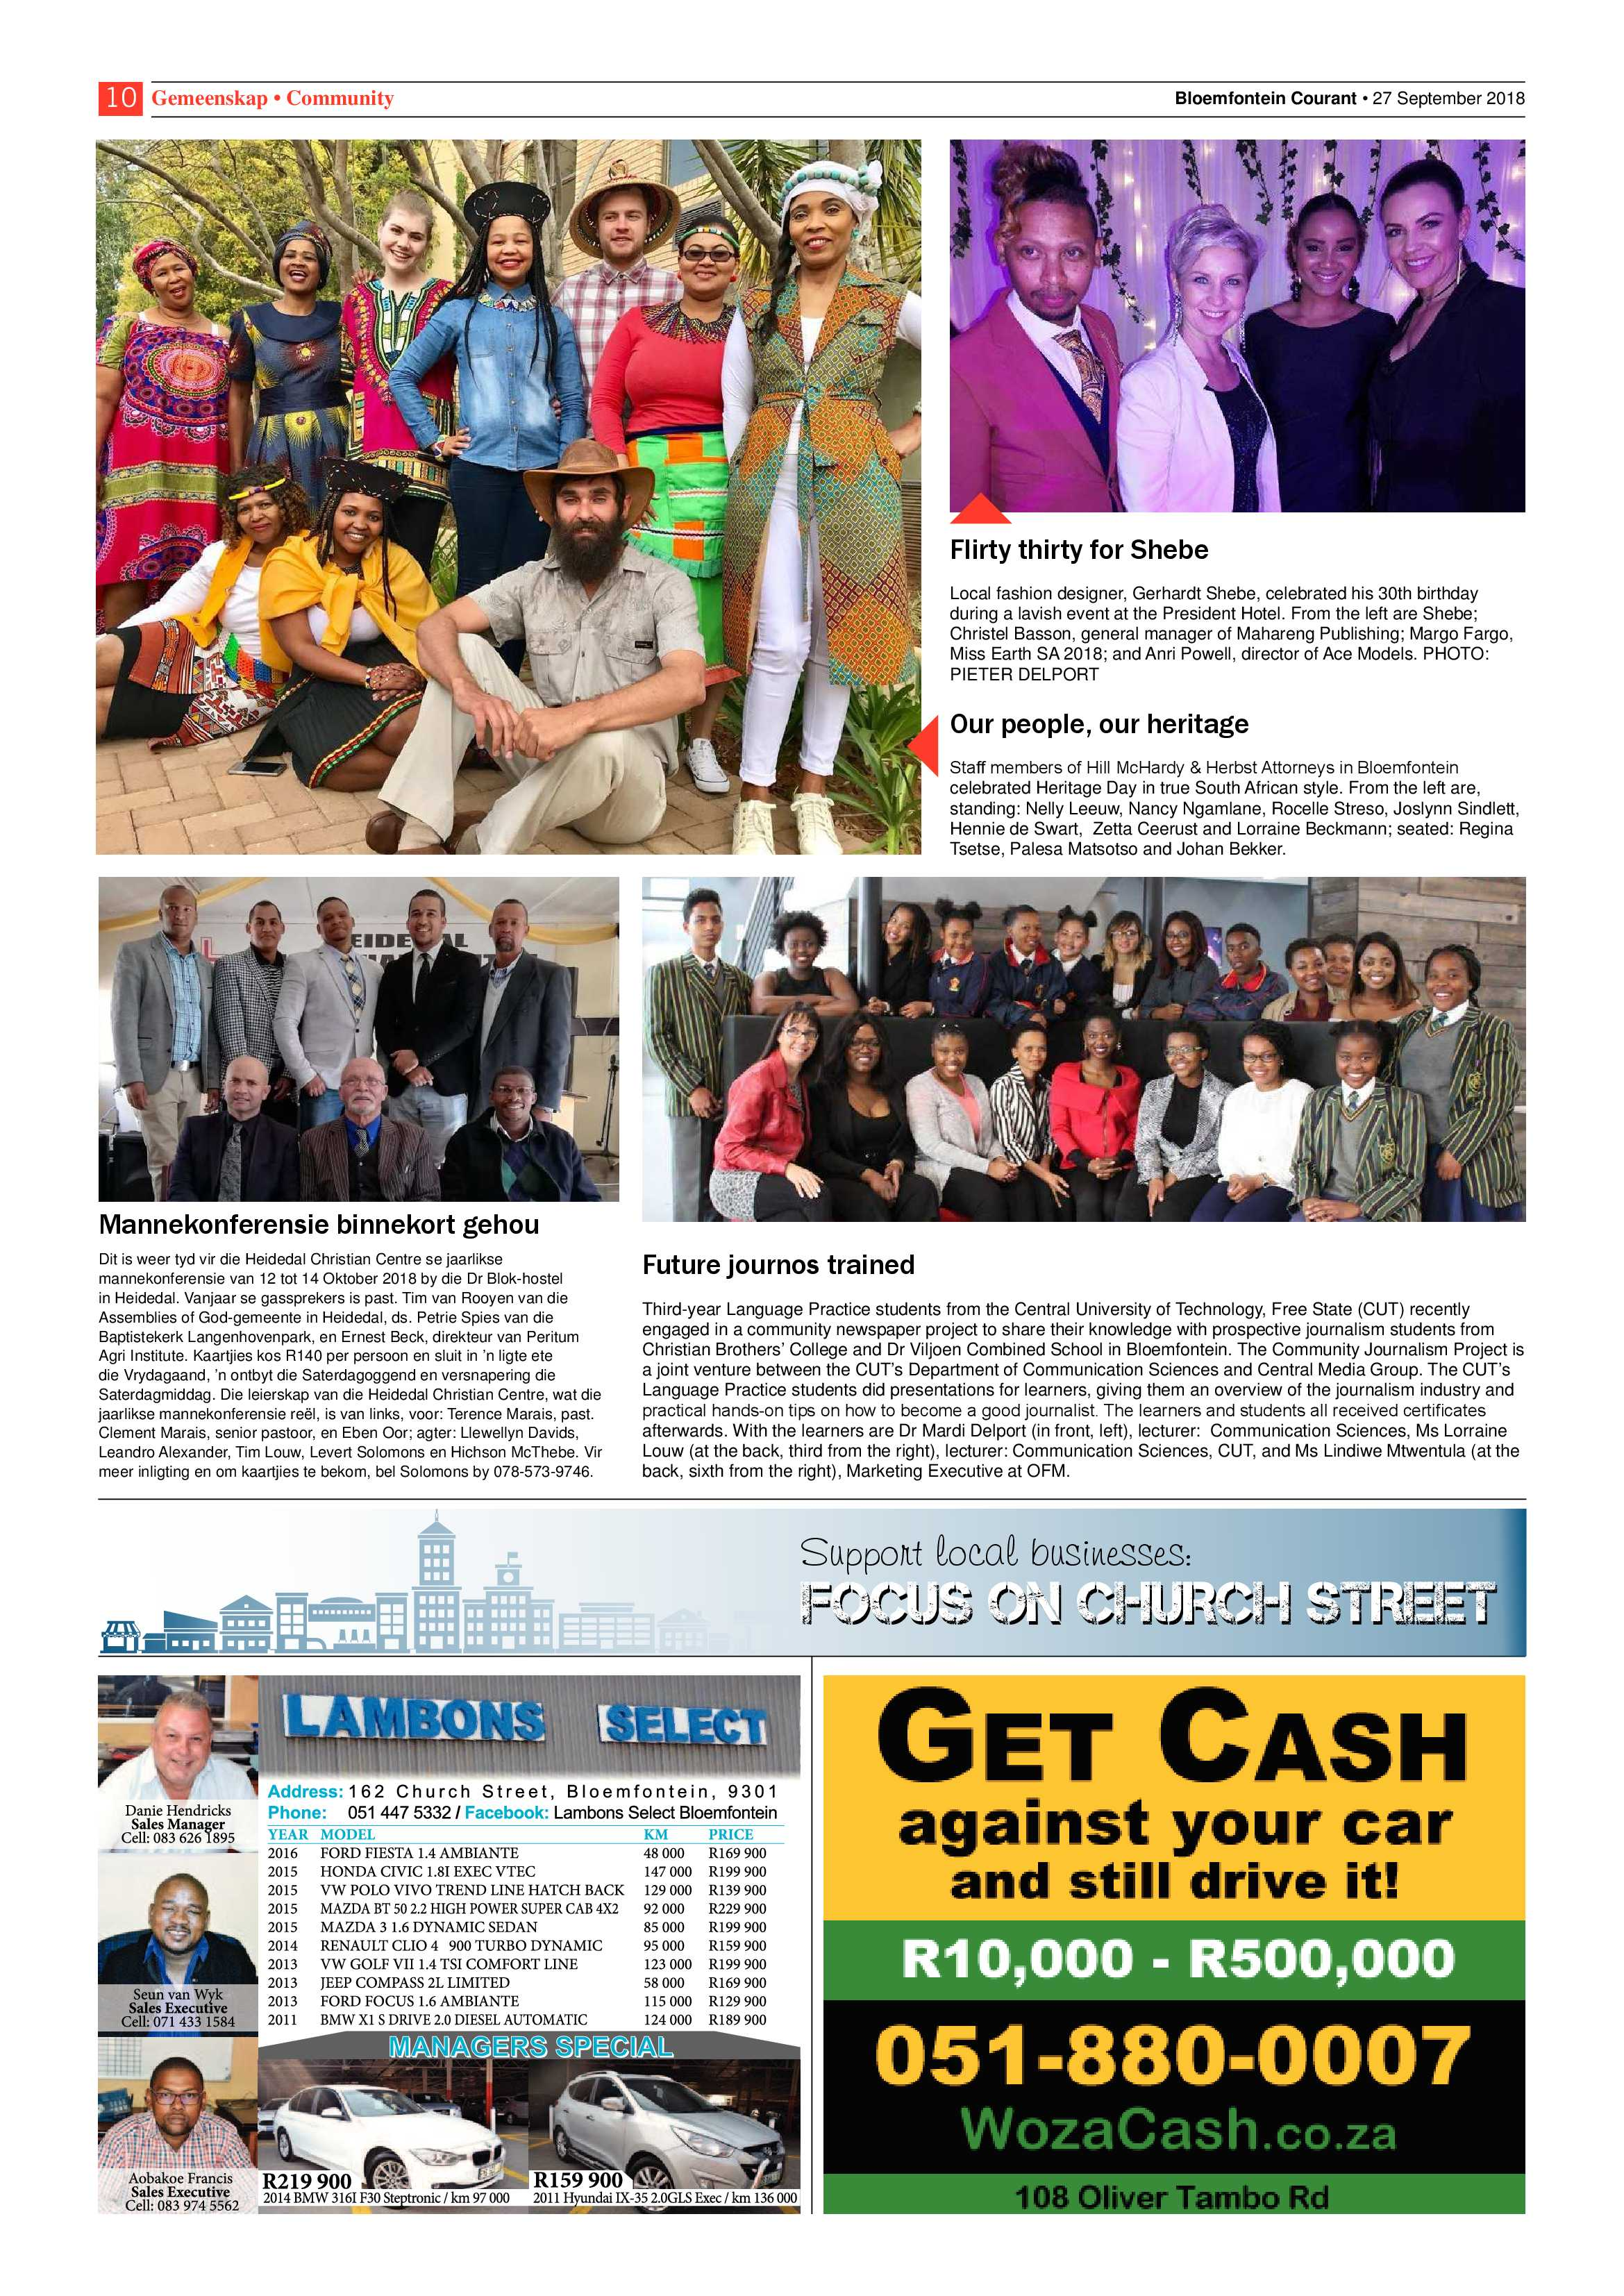 courant-27-september-2018-epapers-page-10